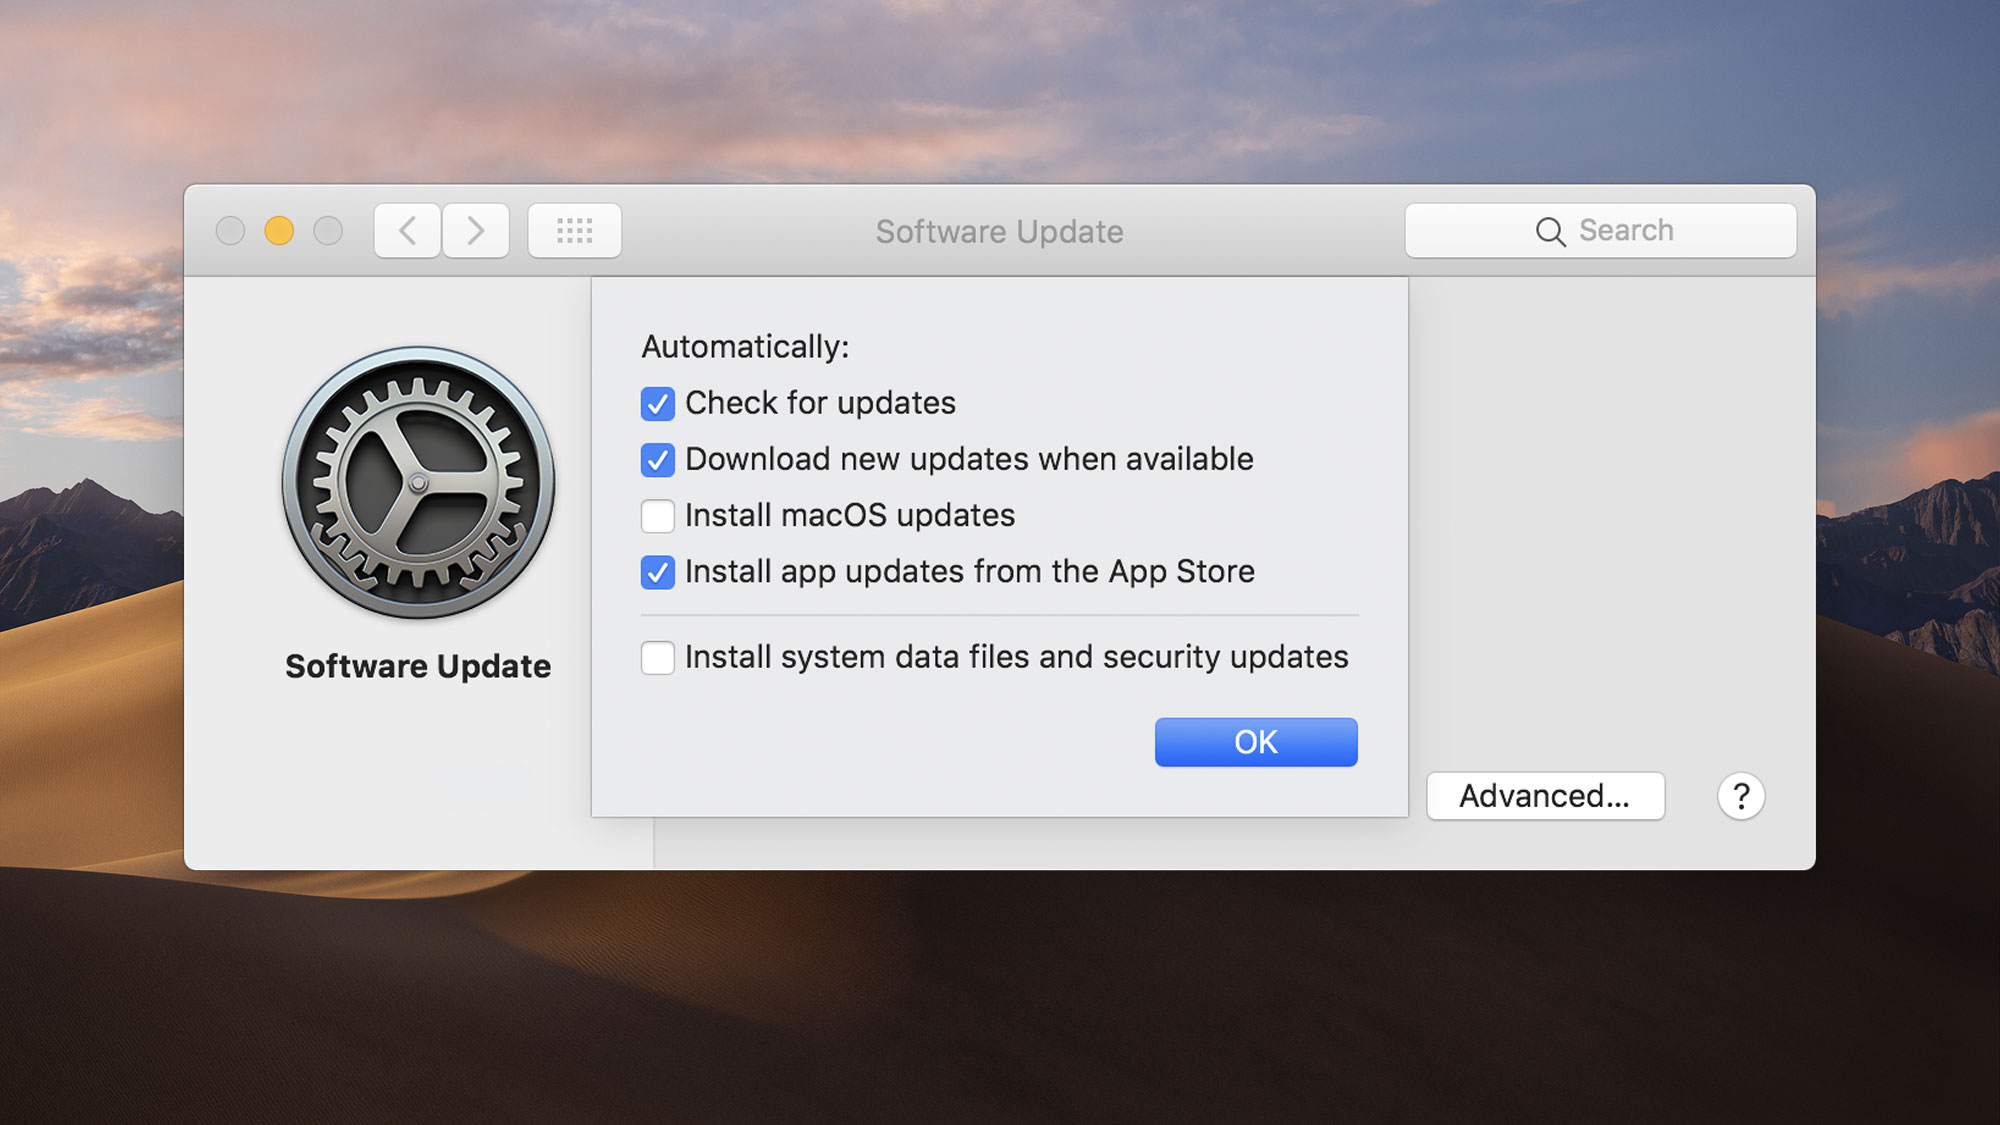 how to delete software updates on mac